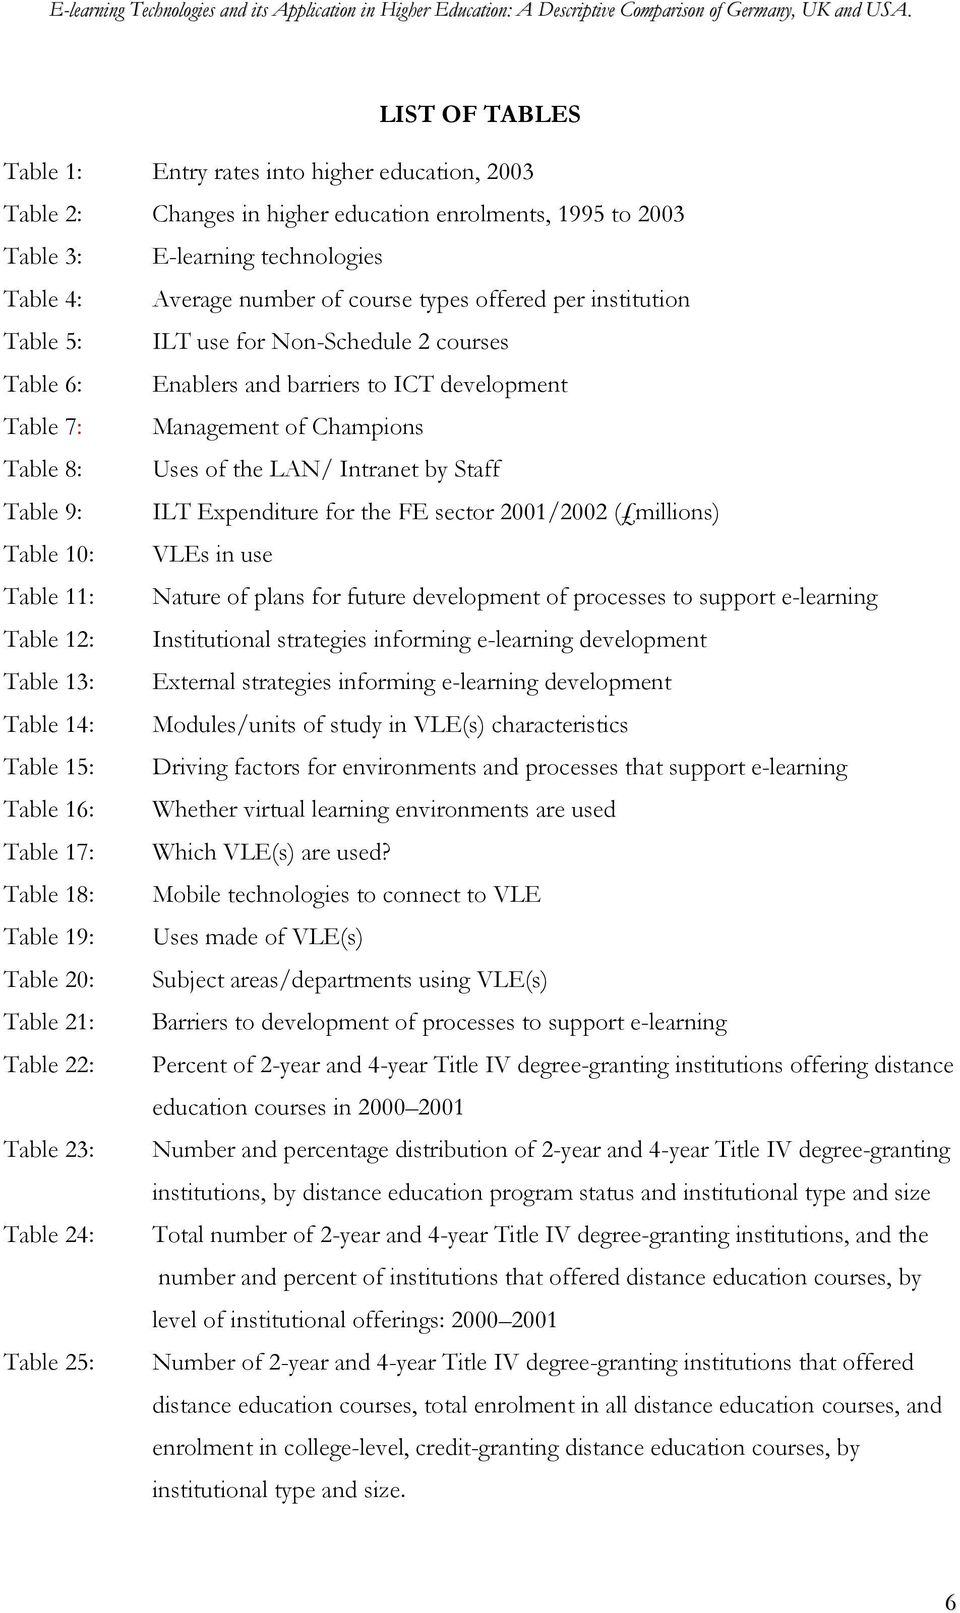 Table 9: ILT Expenditure for the FE sector 2001/2002 ( millions) Table 10: VLEs in use Table 11: Nature of plans for future development of processes to support e-learning Table 12: Institutional